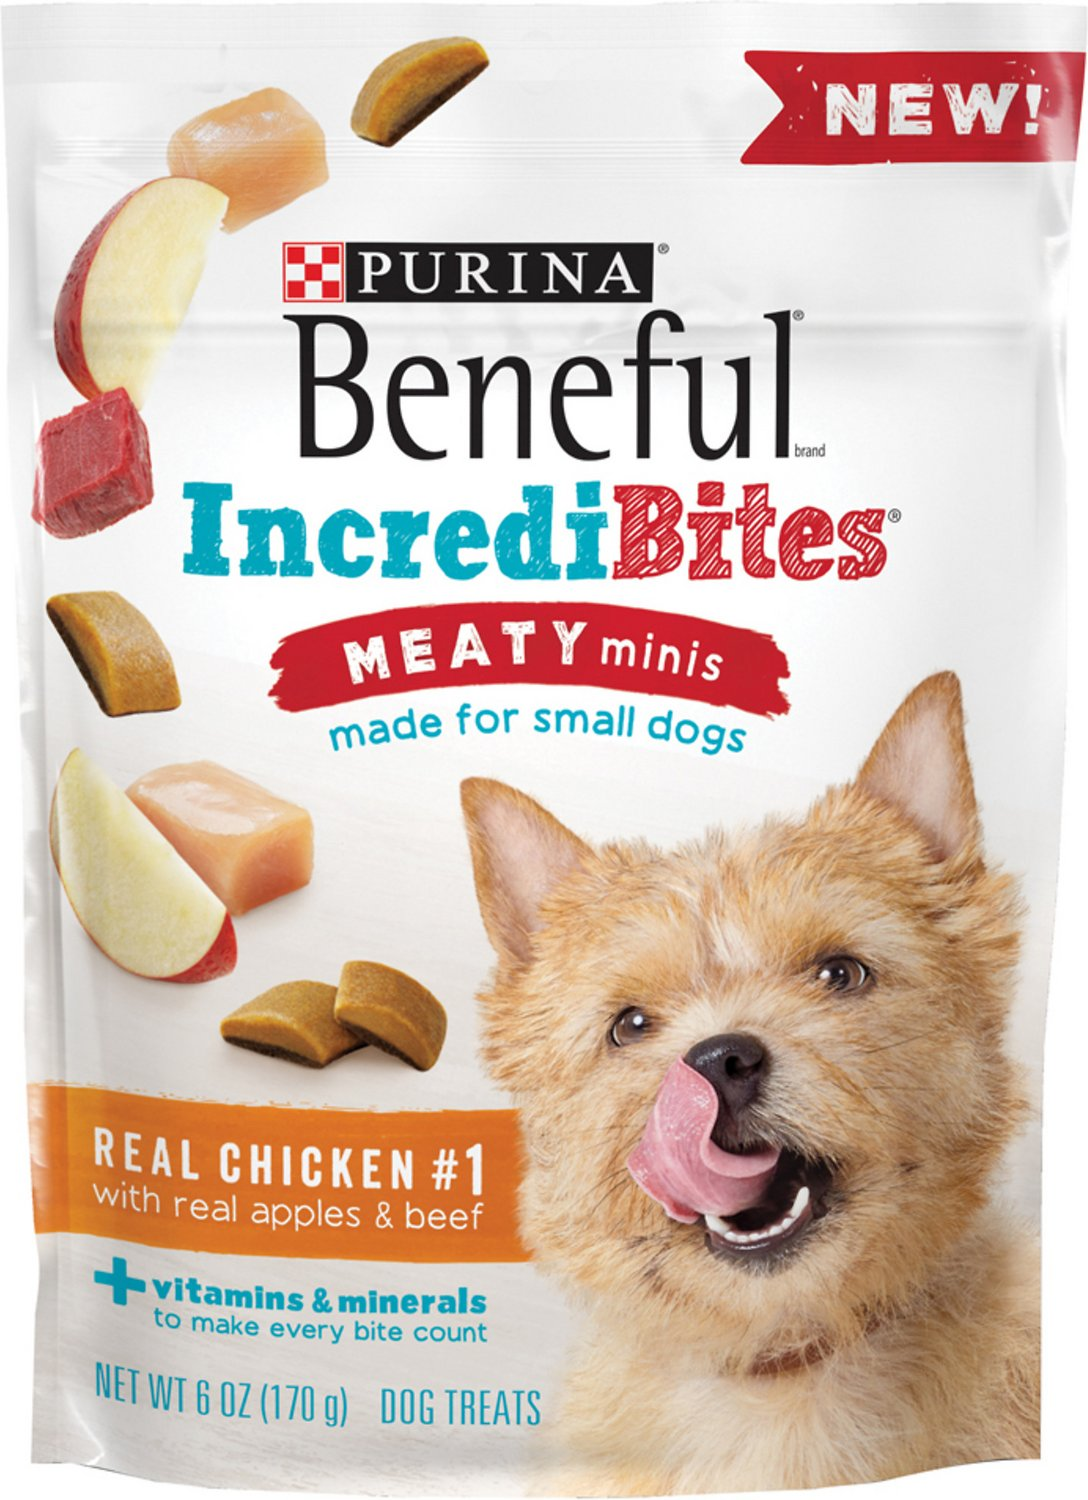 Purina Beneful Incredibites For Small Dogs Meaty Minis Real Chicken